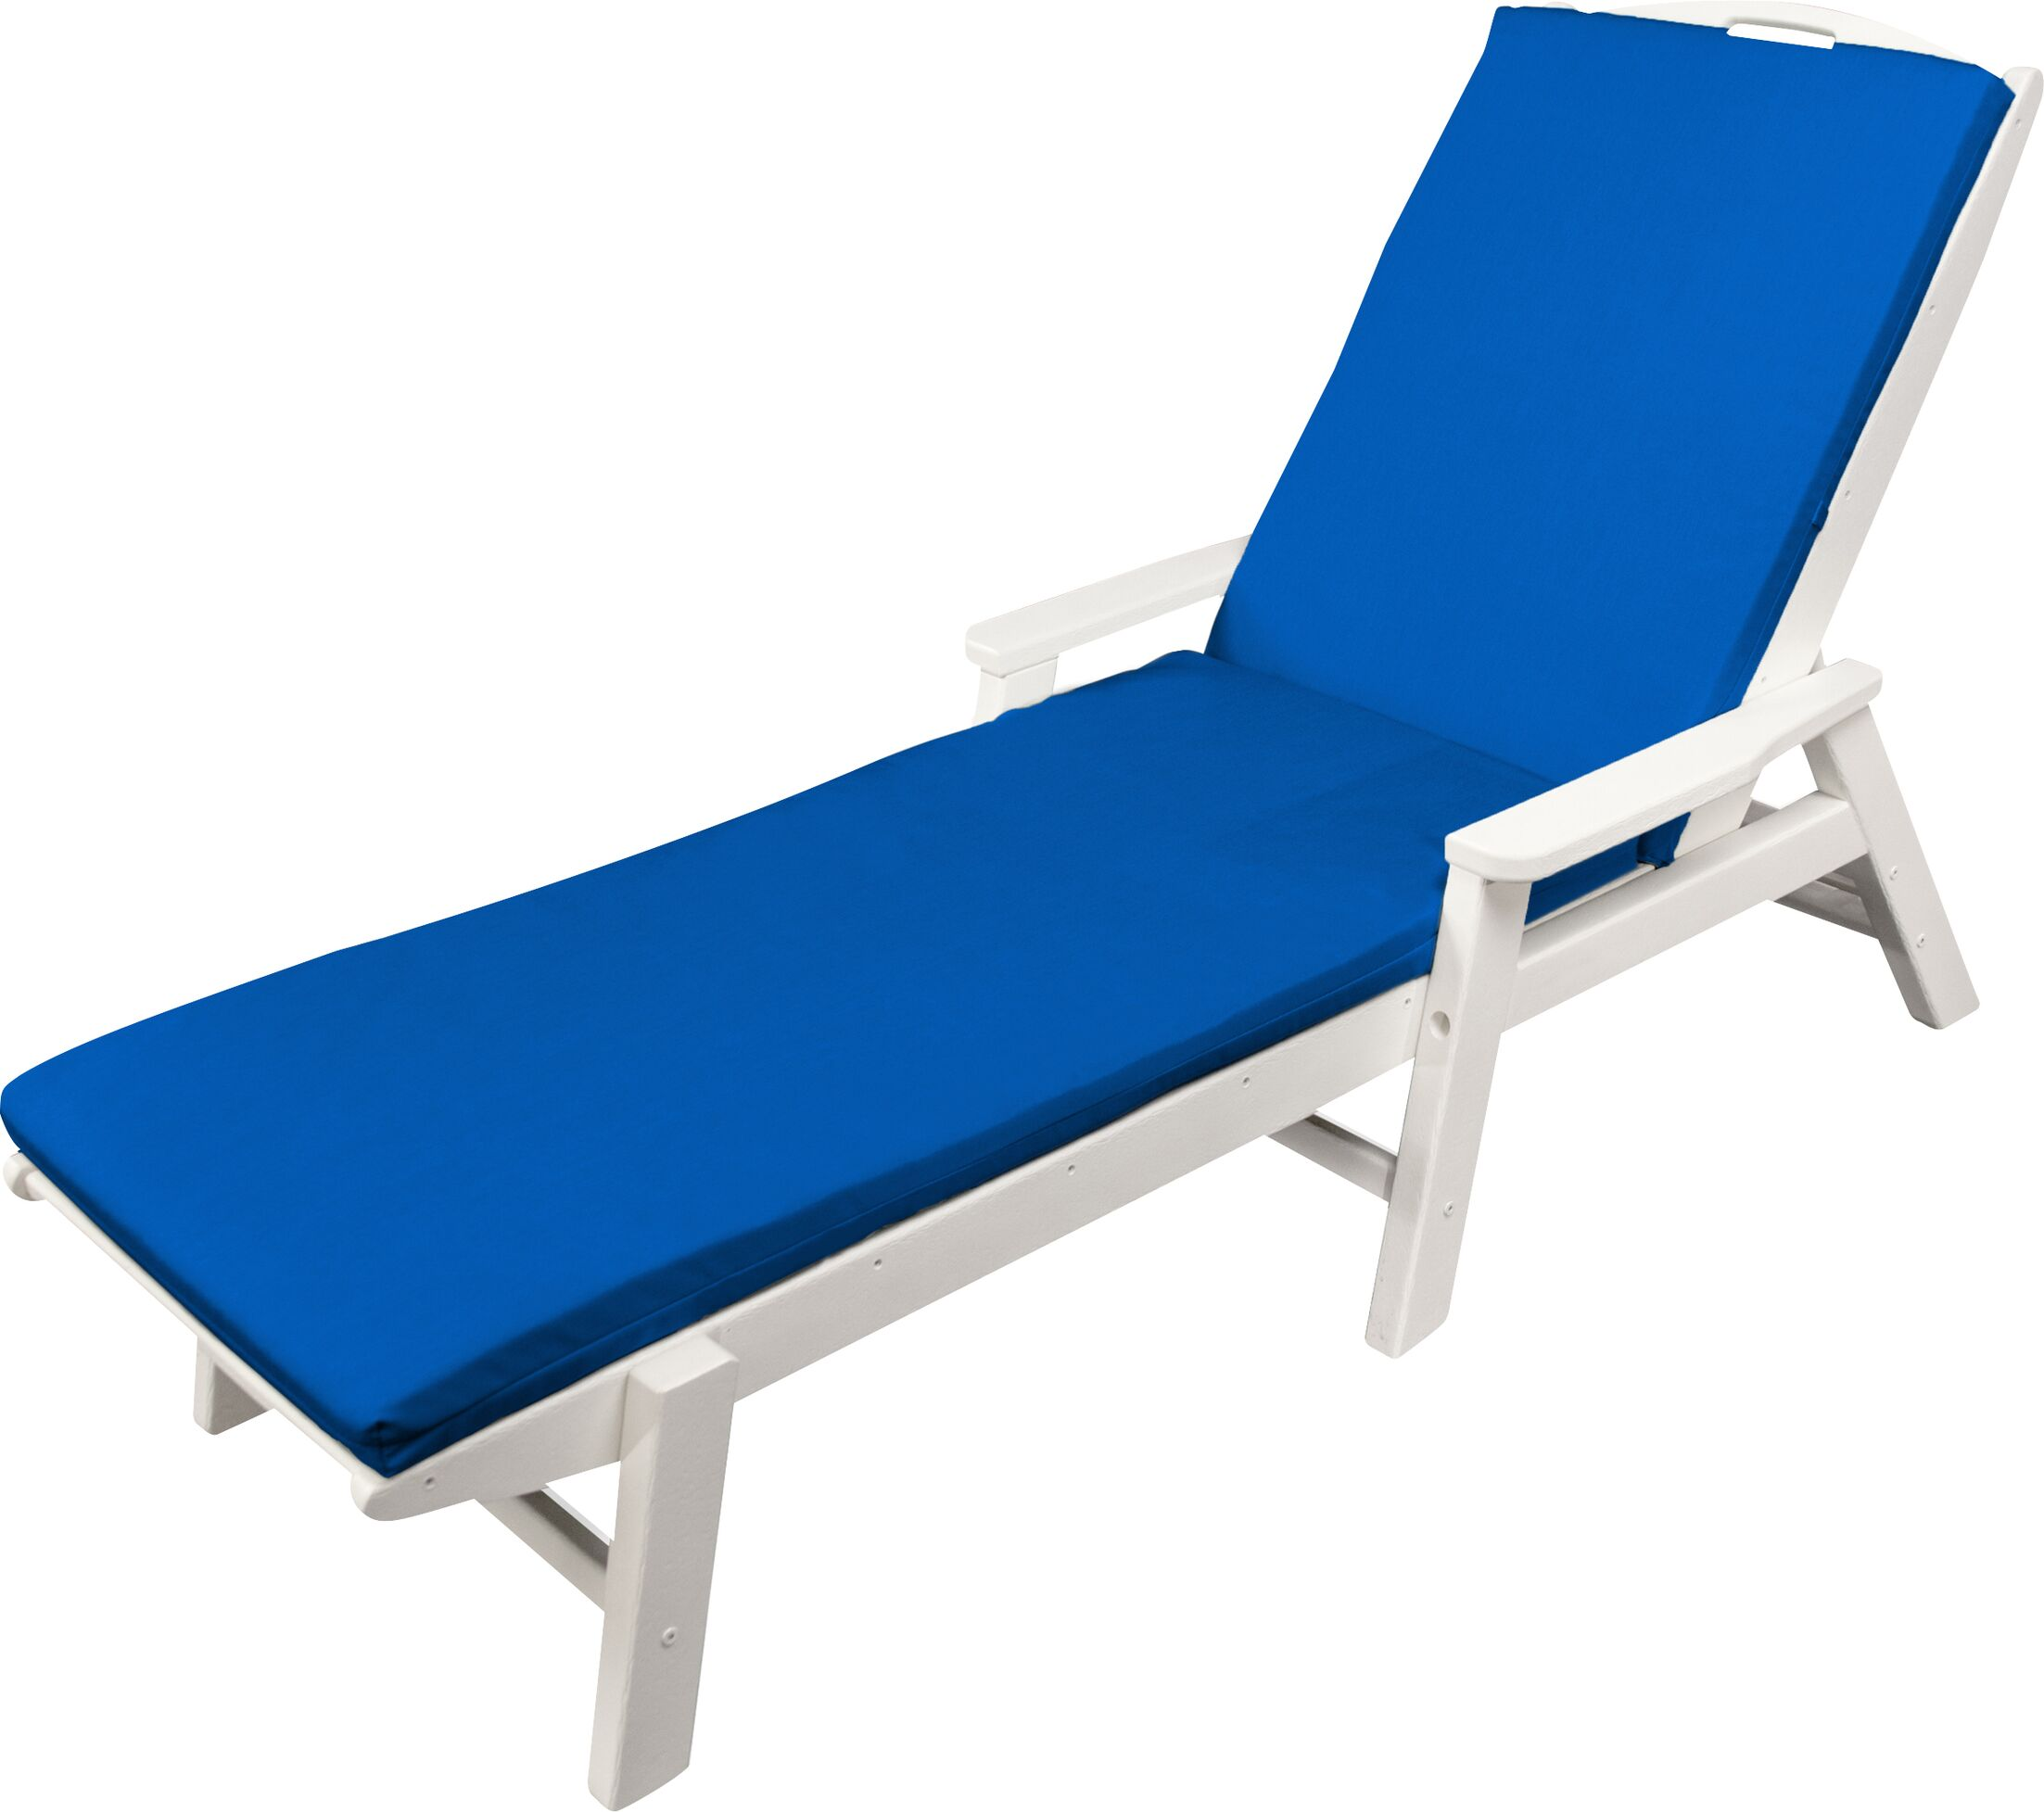 Indoor/Outdoor Sunbrella Chaise Lounge Cushion Fabric: Pacific Blue, Size: 22